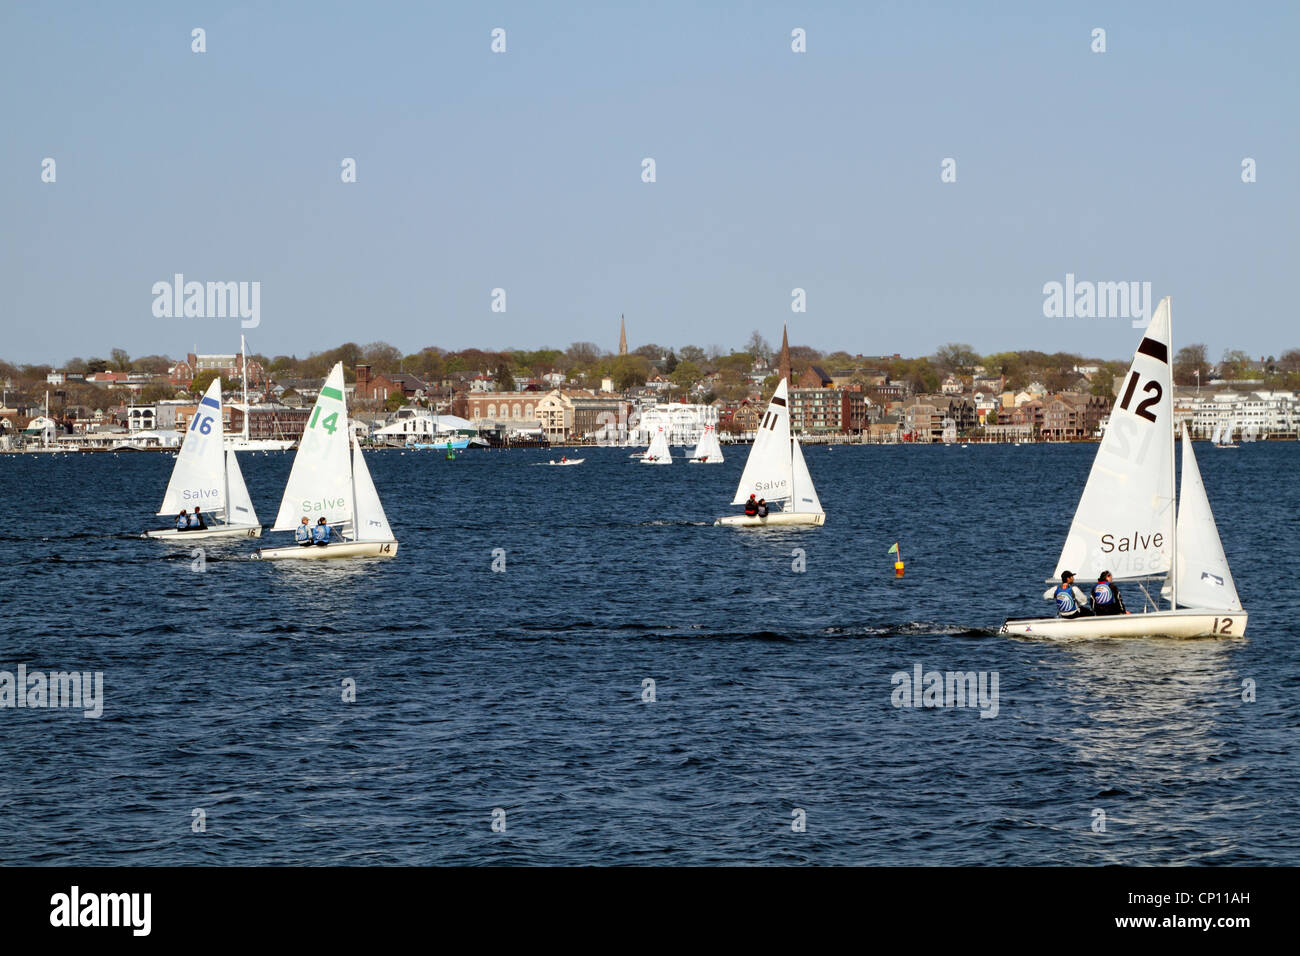 Sailboats racing in the harbor, Newport, Rhode Island, USA - Stock Image